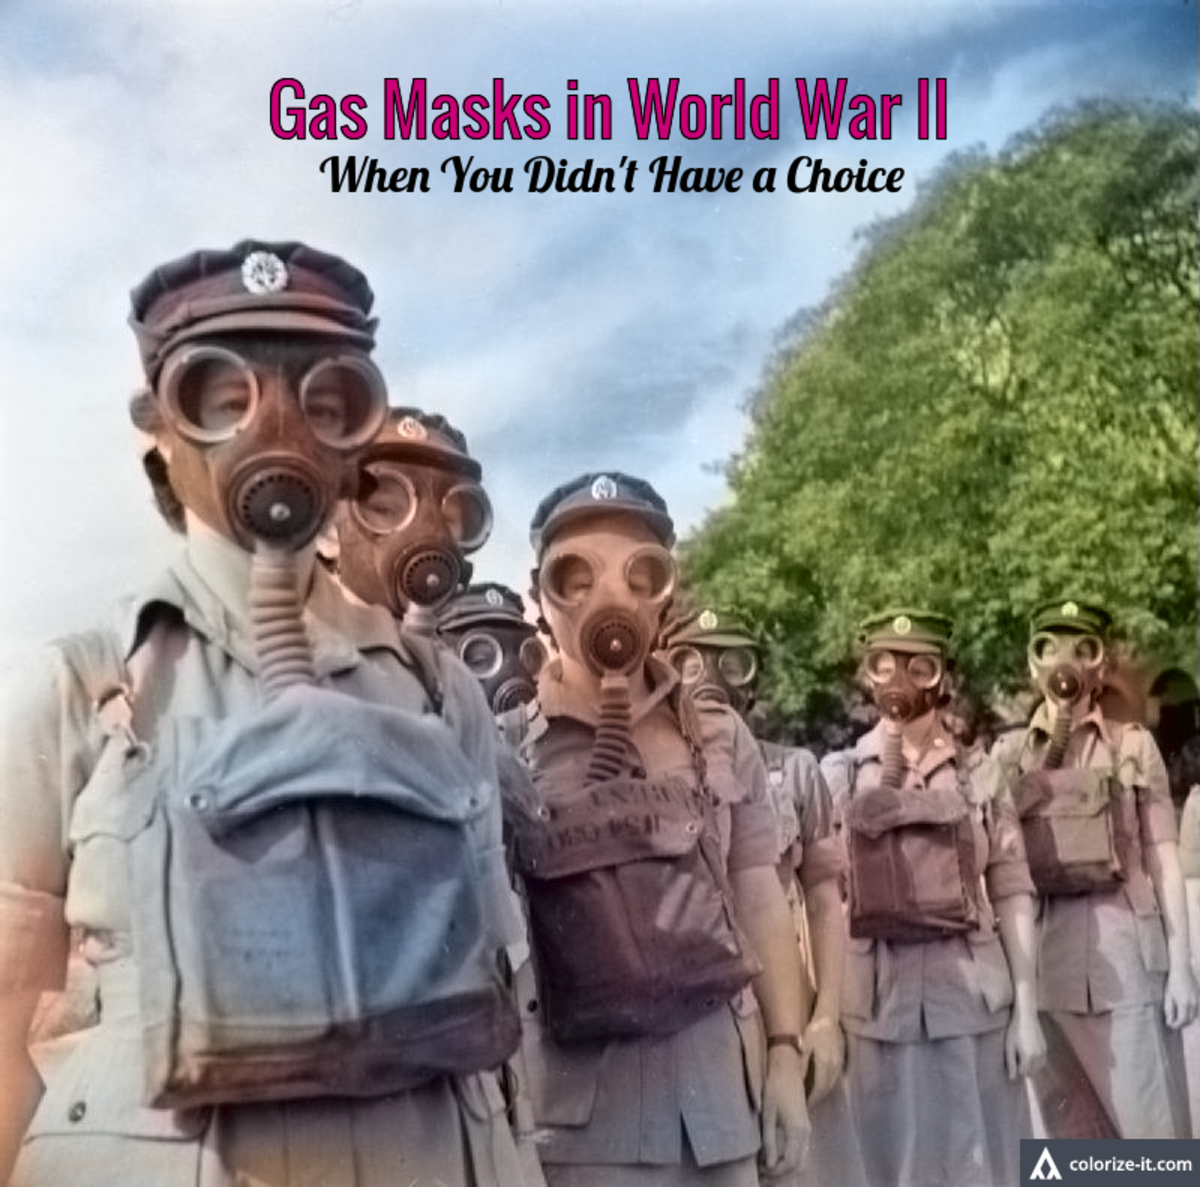 Gas Masks in World War II - When You Didn't Have a Choice